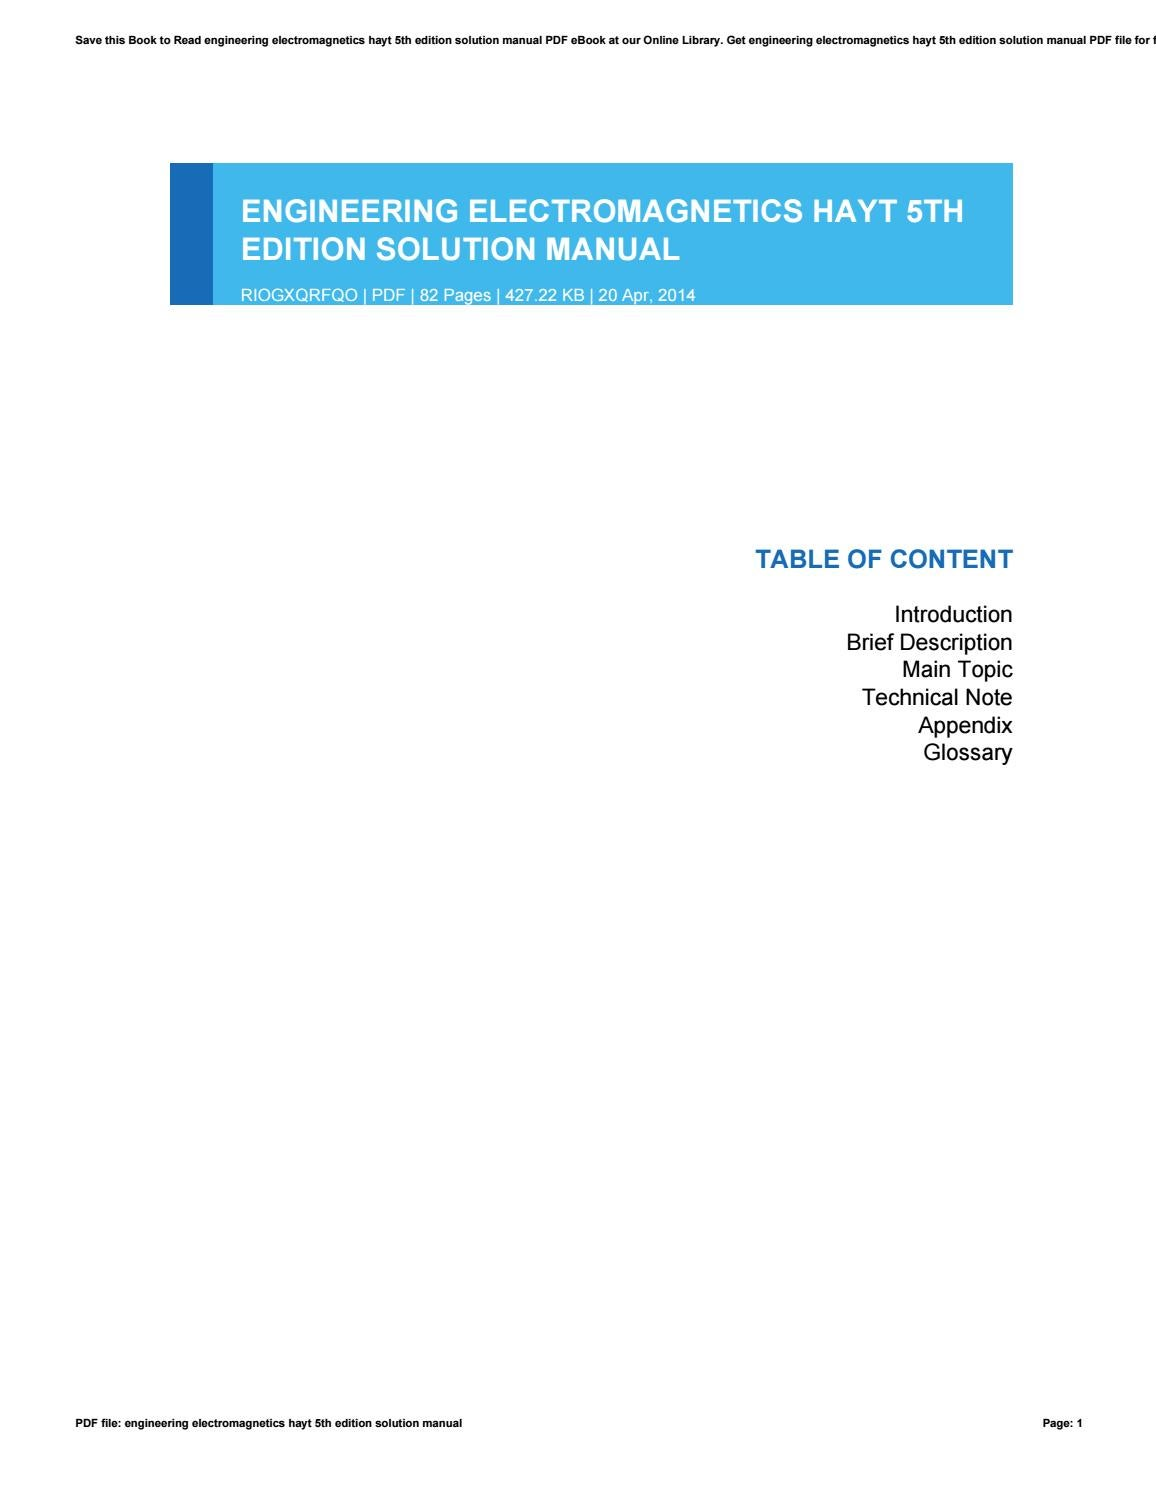 Engineering electromagnetics hayt 5th edition solution manual by  CliftonMoses2017 - issuu